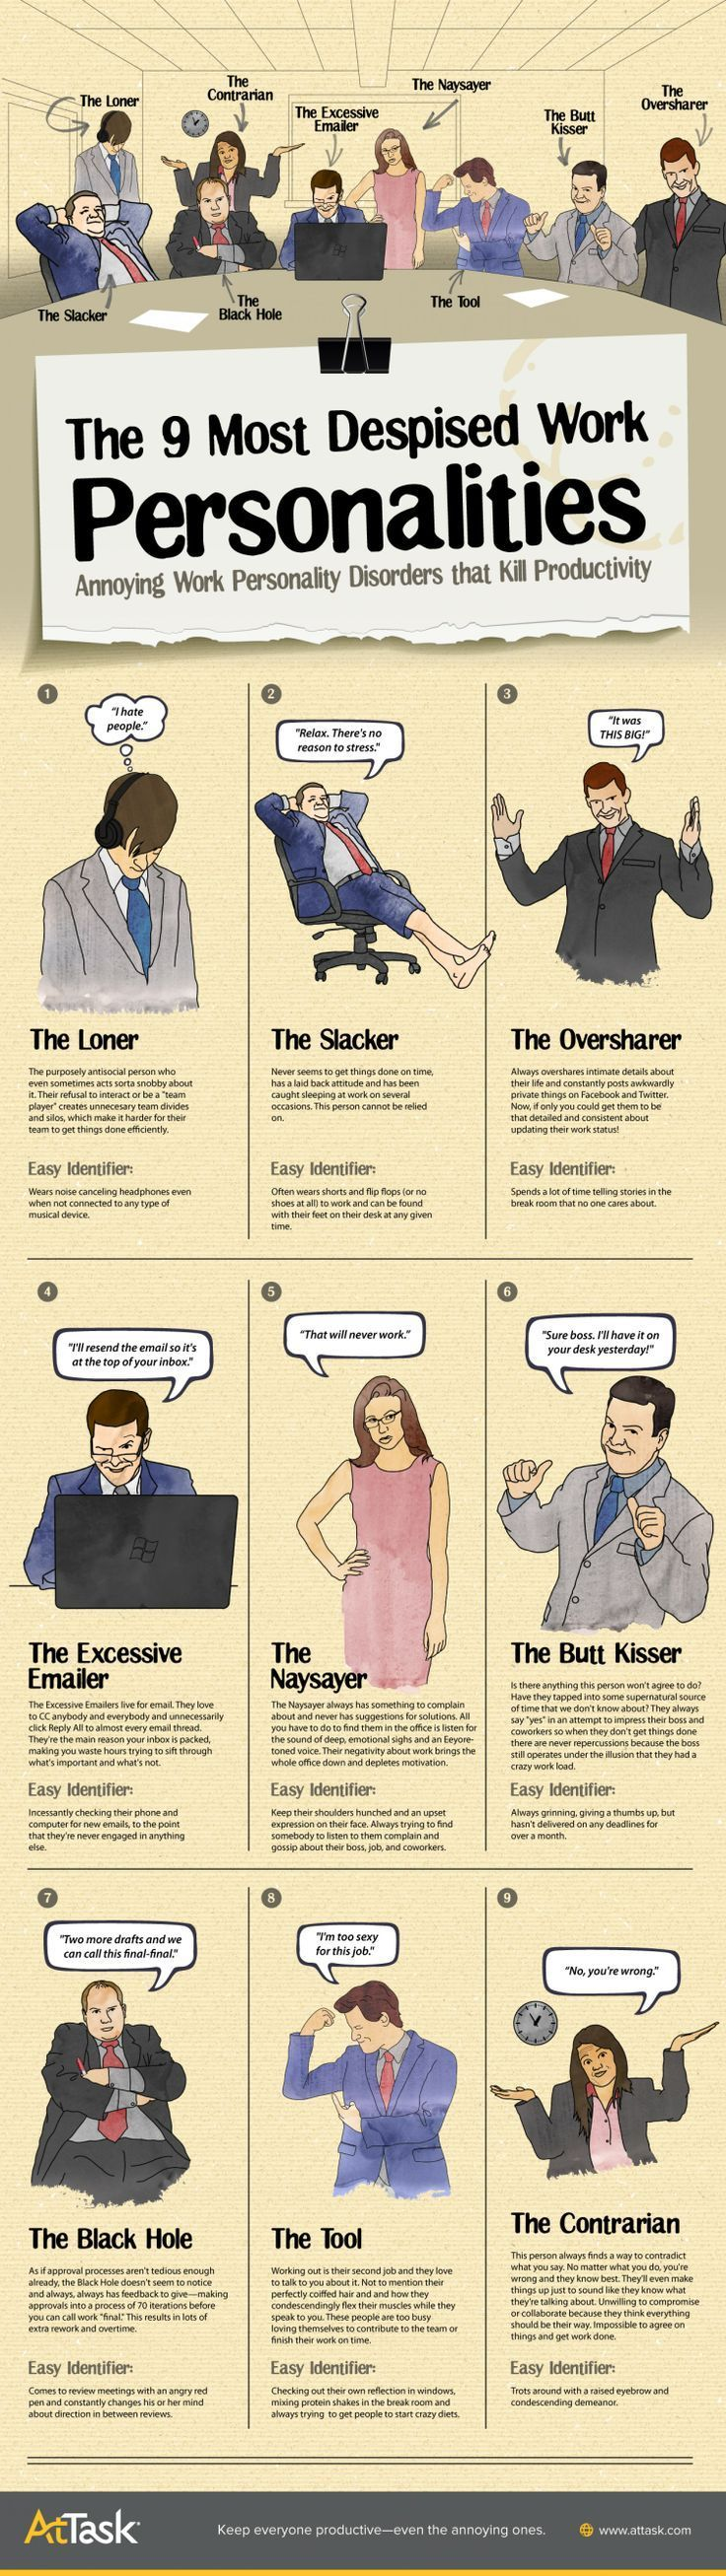 Psychology : The 9 Most Despised Work Personalities: Annoying Work Personalities Disorders th